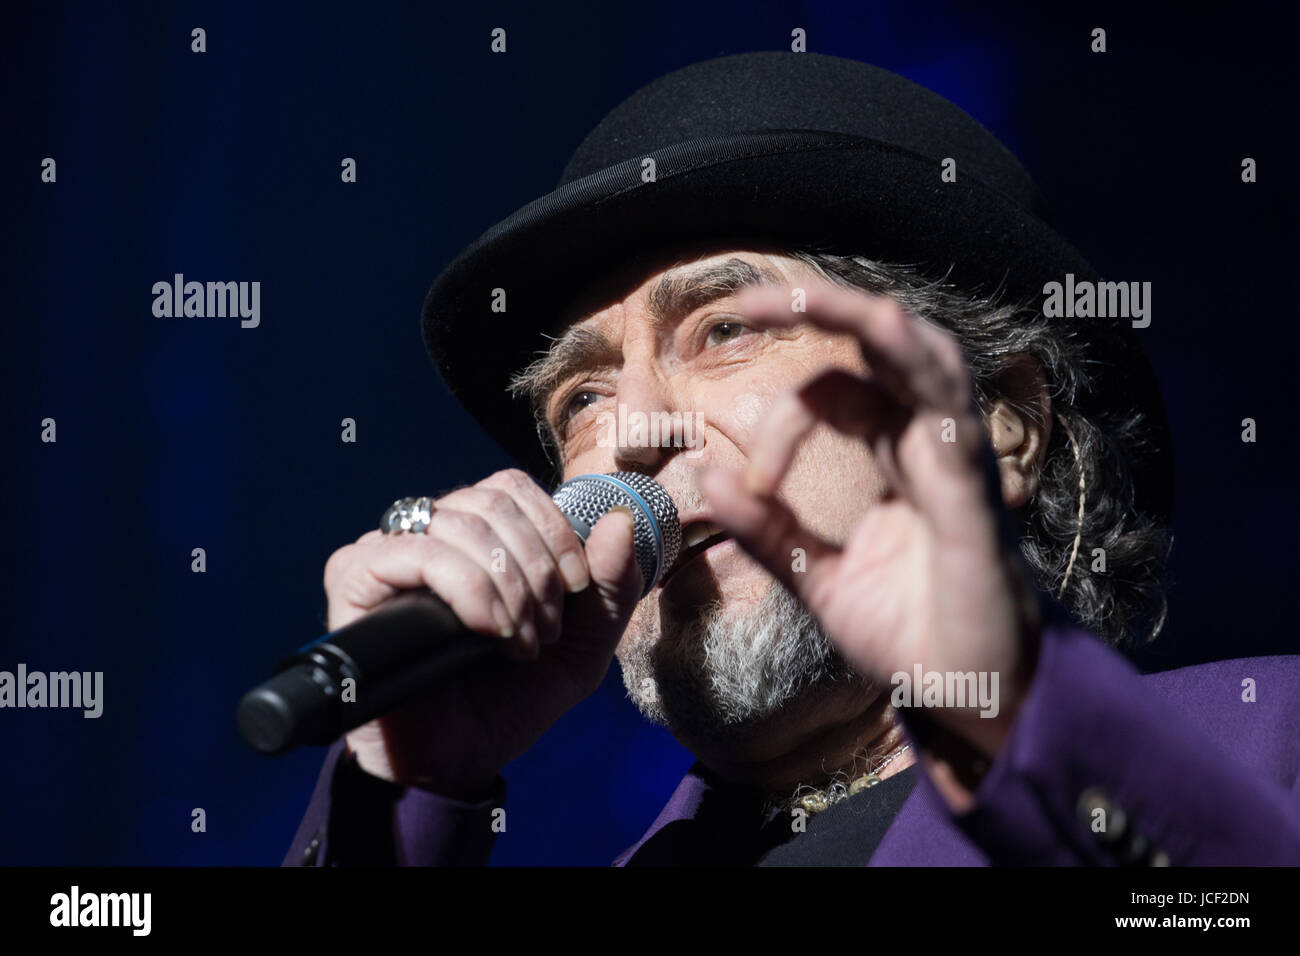 London, UK. 14th June, 2017. Joaquin Sabina performs at Royal Albert Hall as part of his tour Lo Niego Todo in London Stock Photo